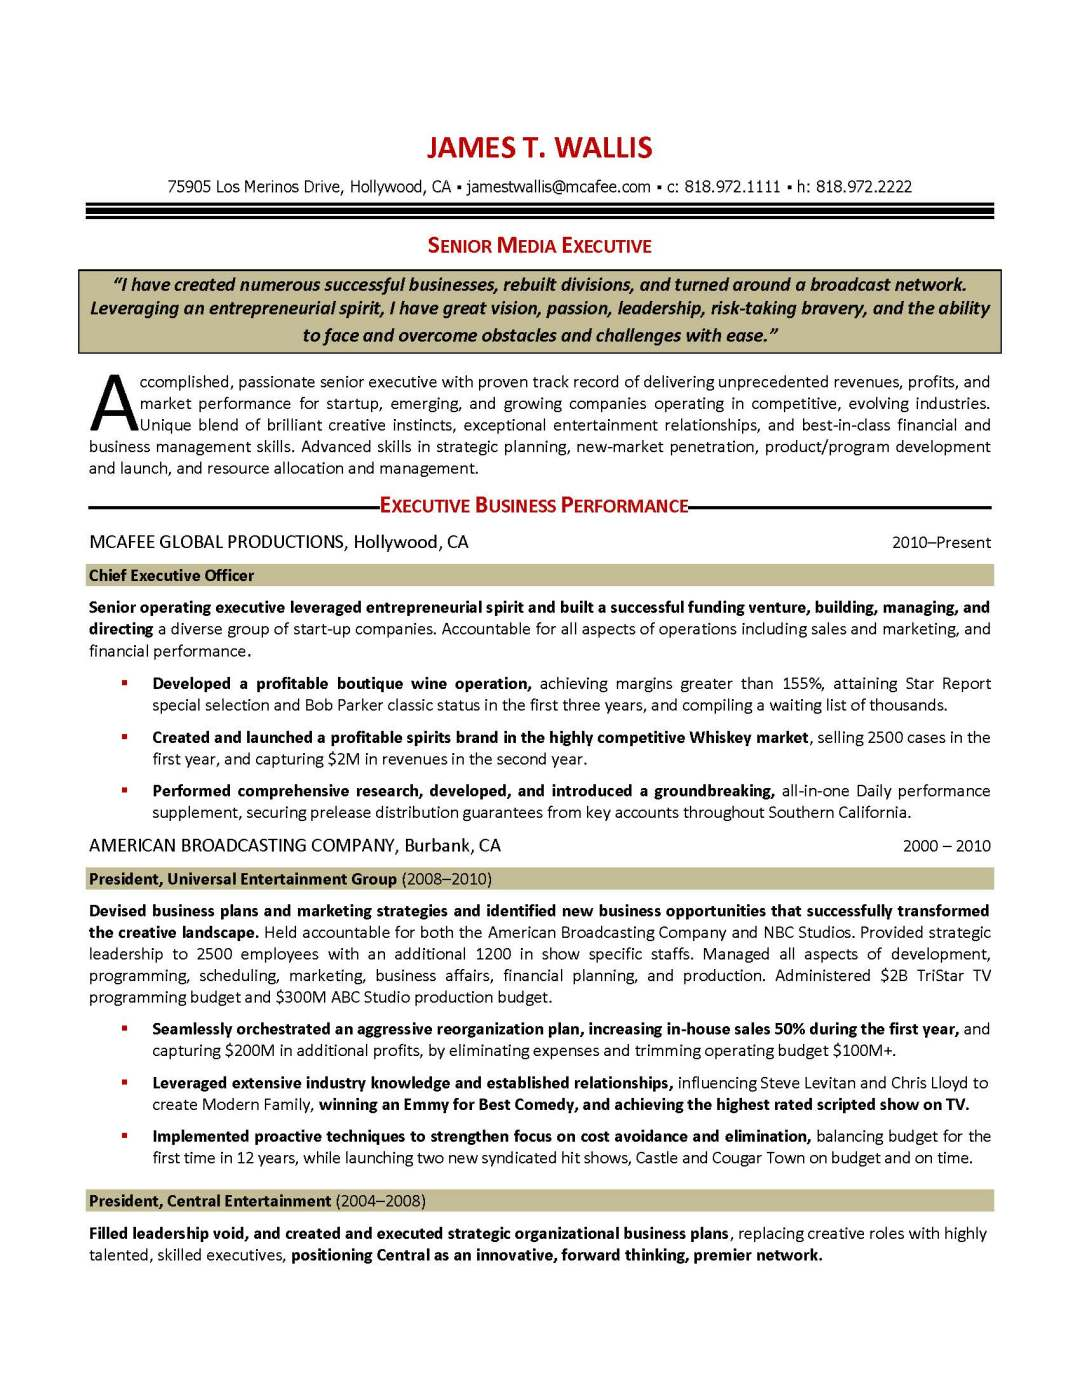 media executive resume sample, provided by Elite Resume Writing Services